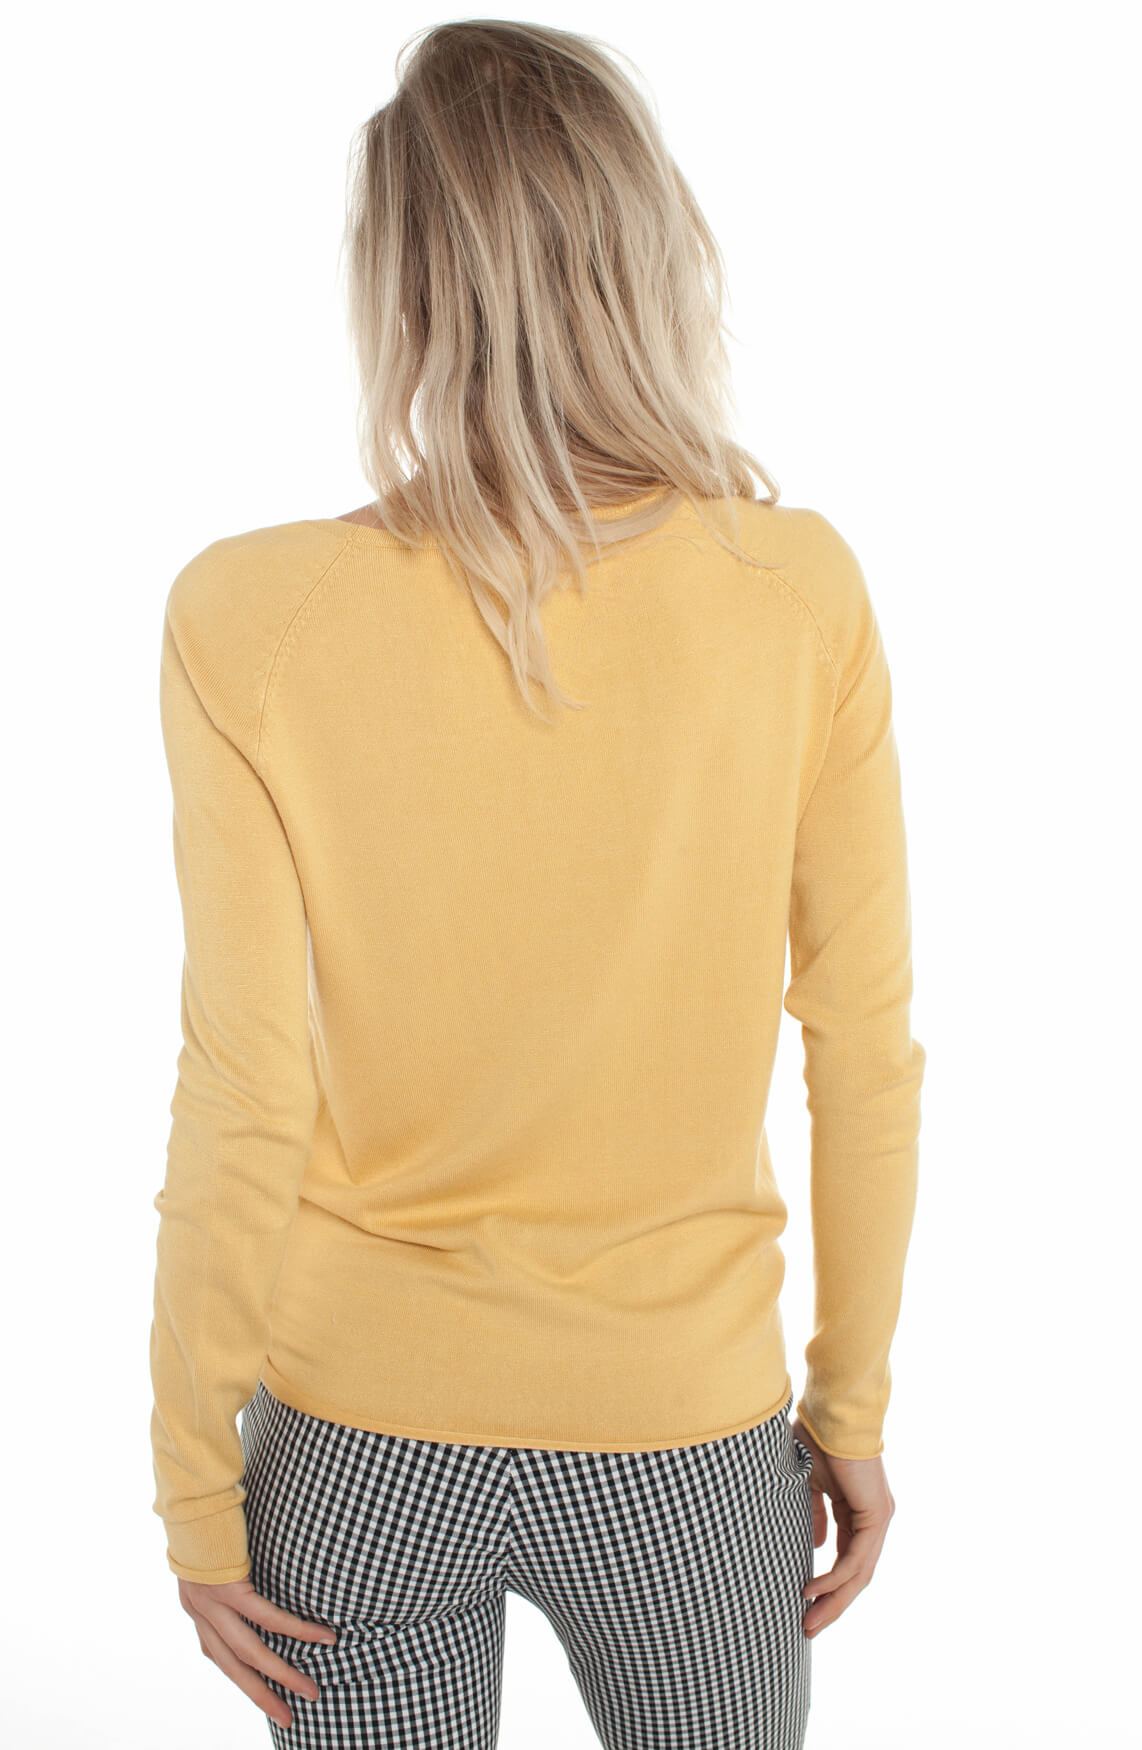 Anna Dames Pullover met knoopdetail geel